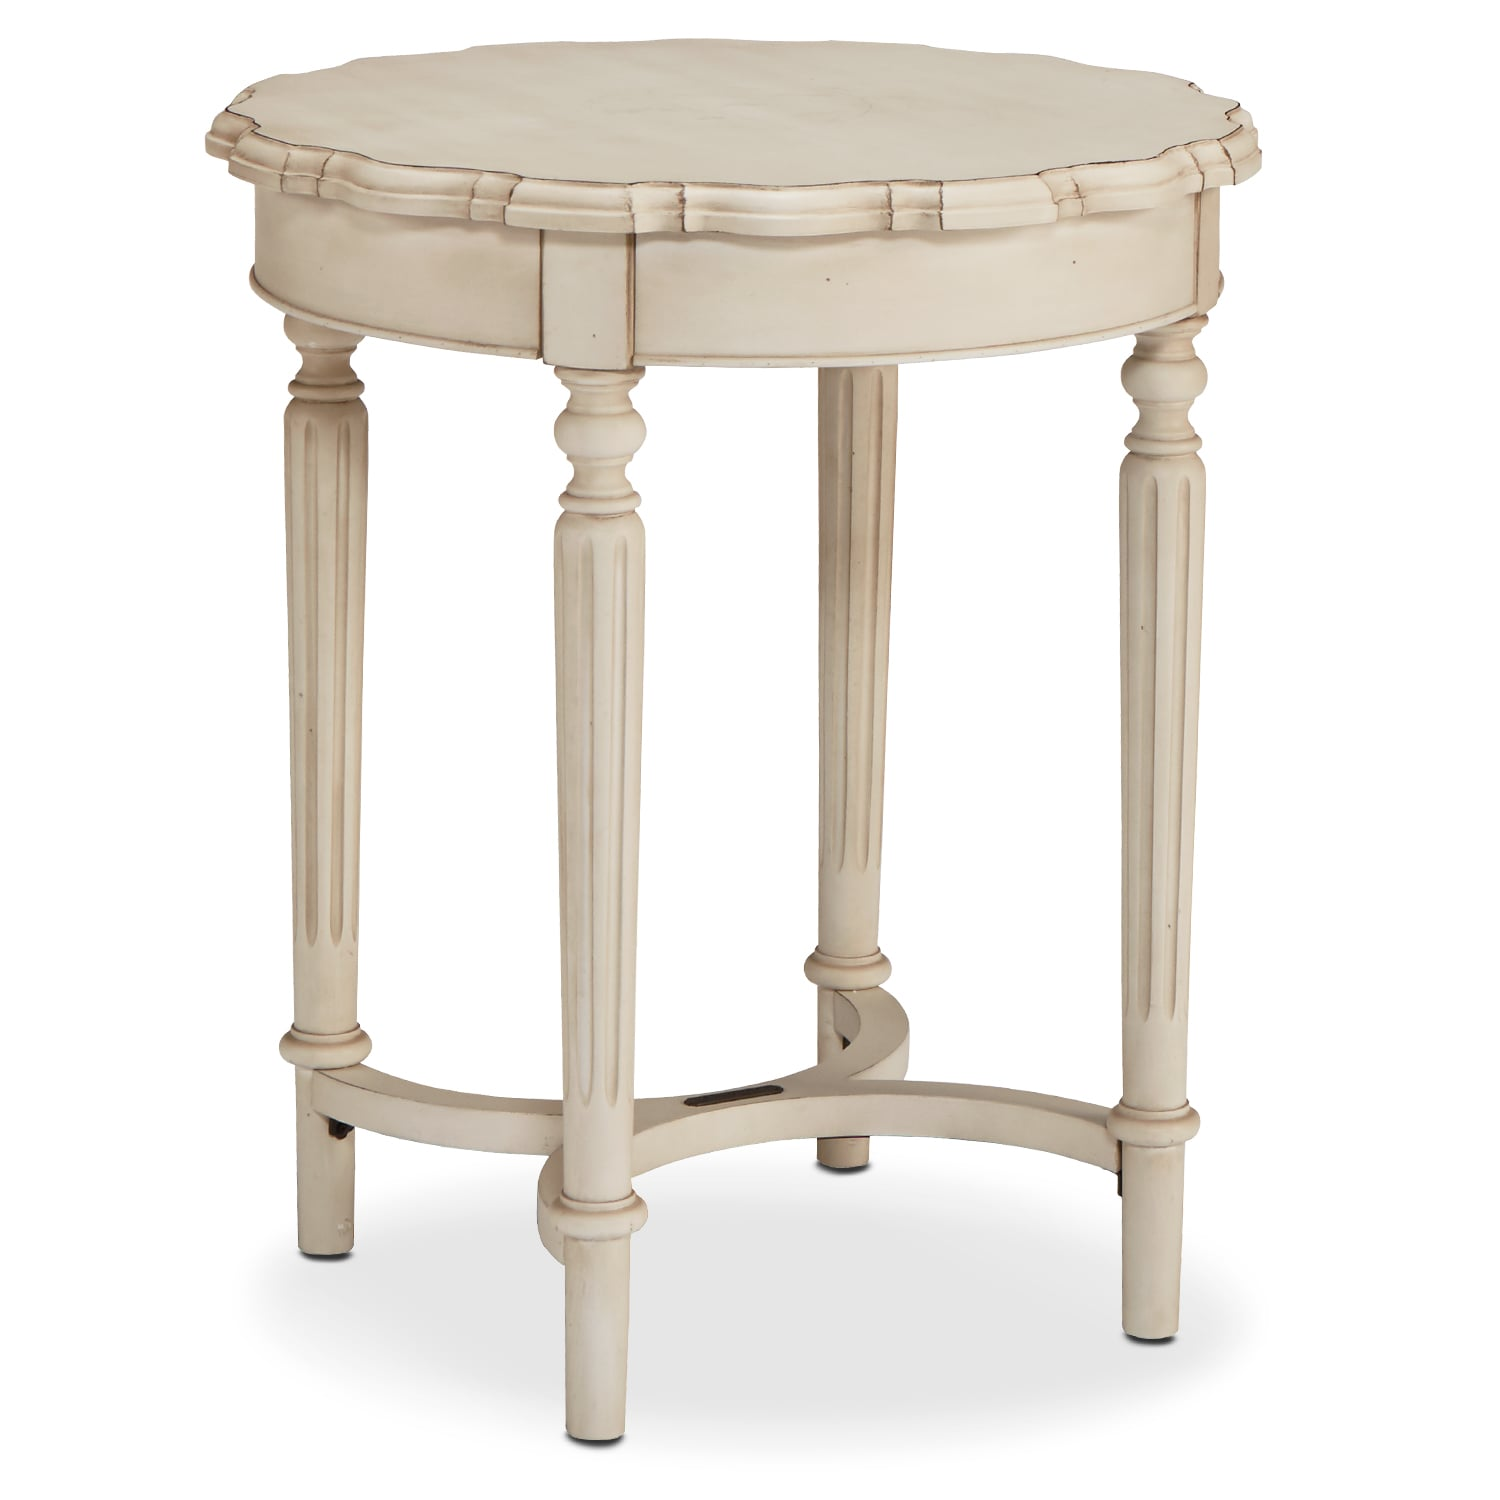 French Pie Crust Tall Table - Antique White